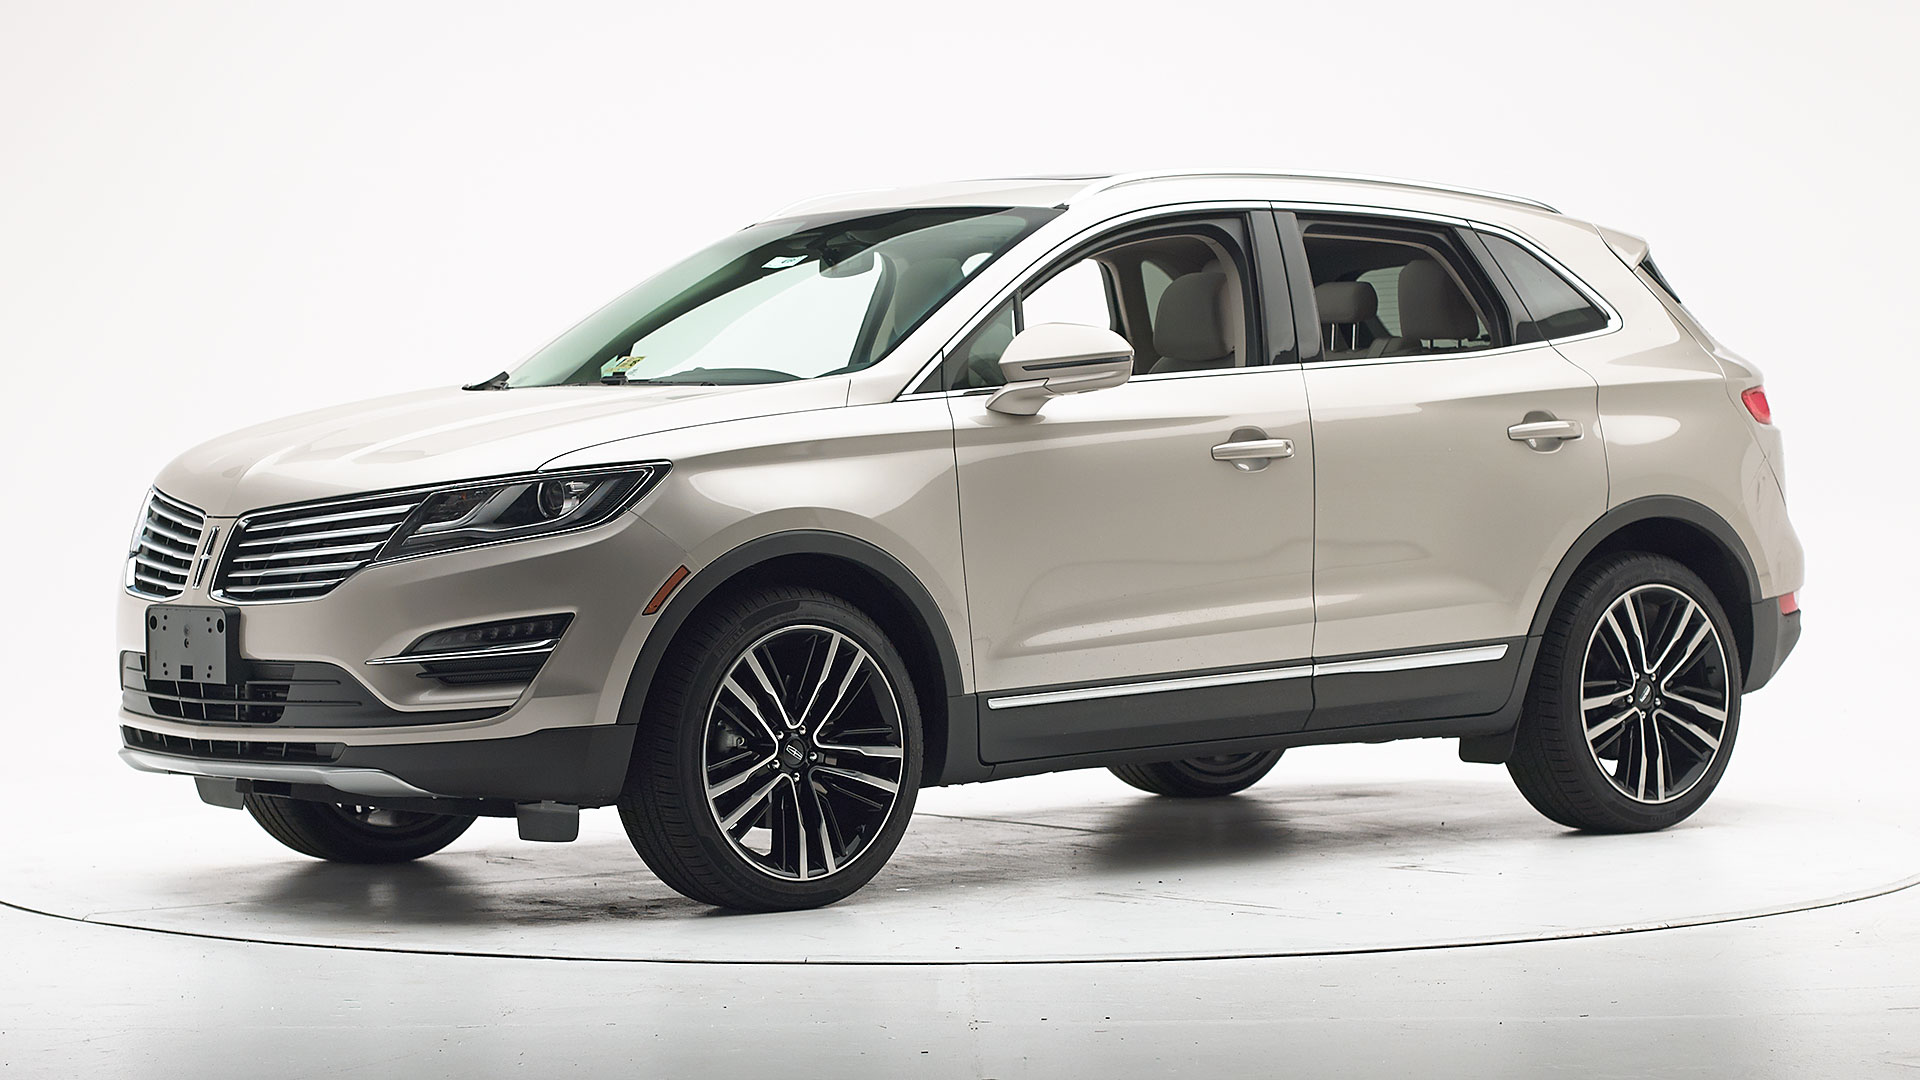 2019 Lincoln MKC 4-door SUV